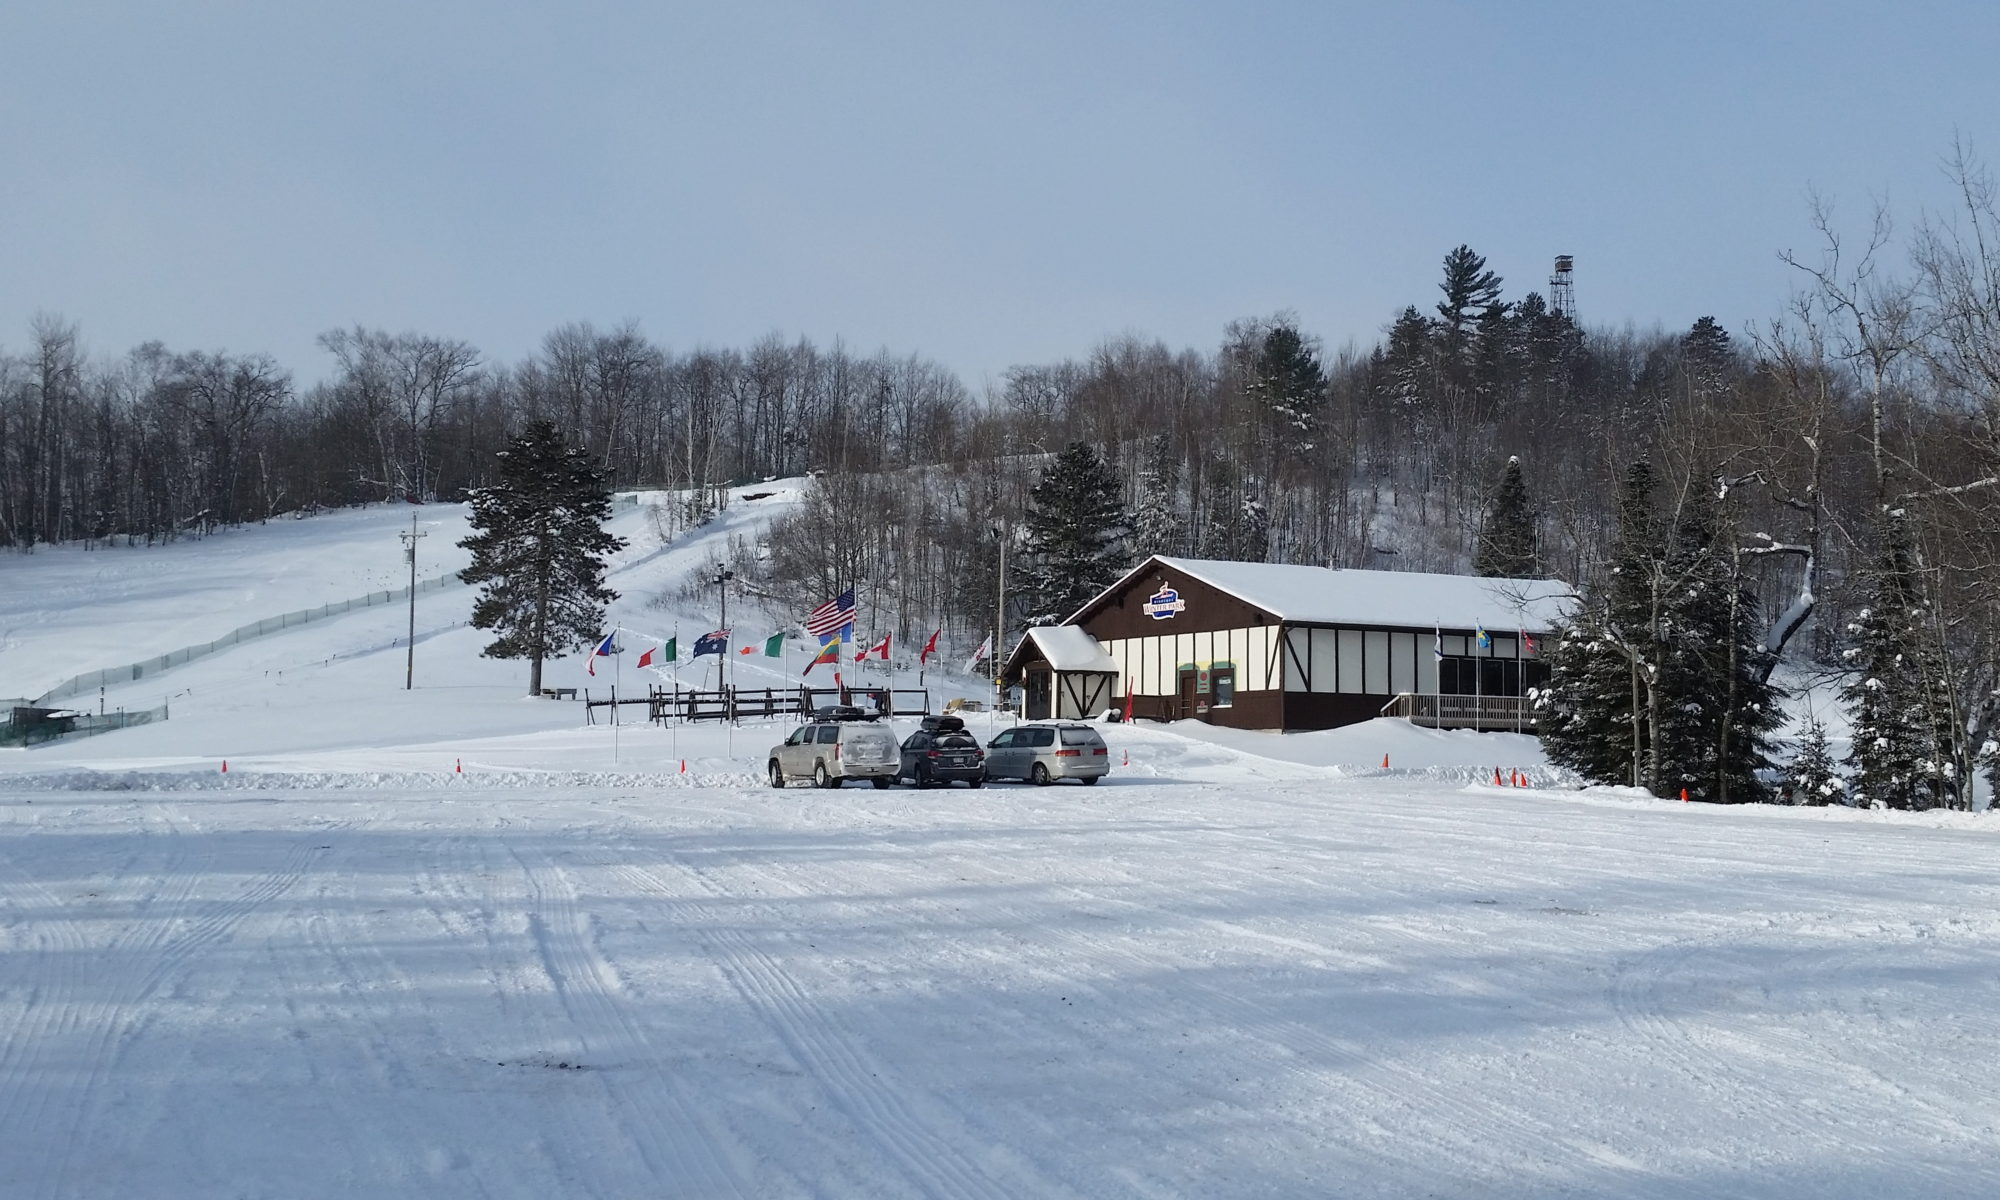 Minocqua Winter Park Ski Shop